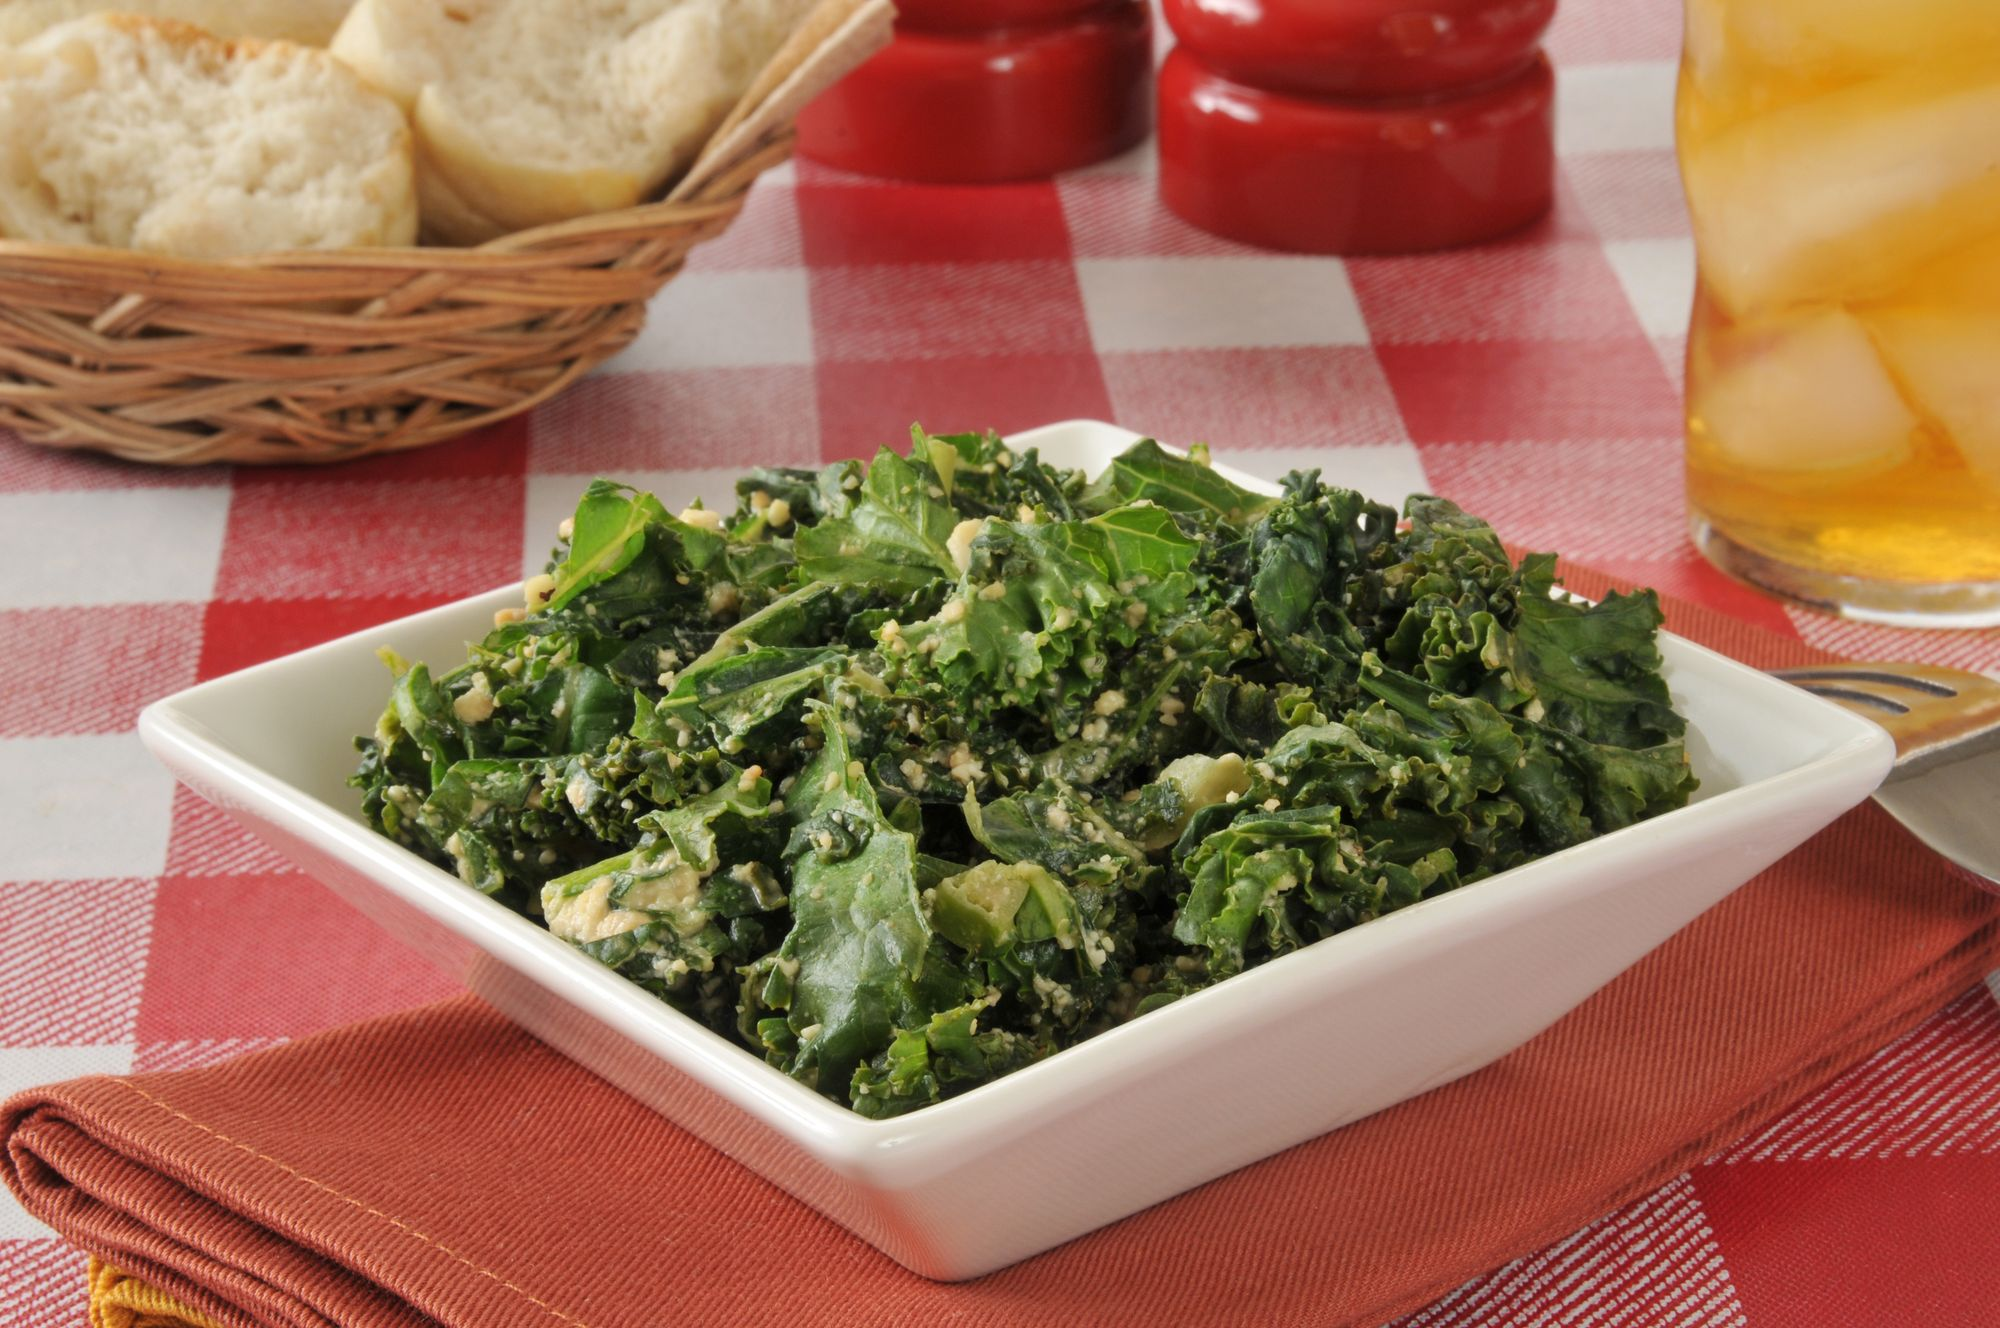 Sweet 'n' Sour Kale with Anchovies Salad